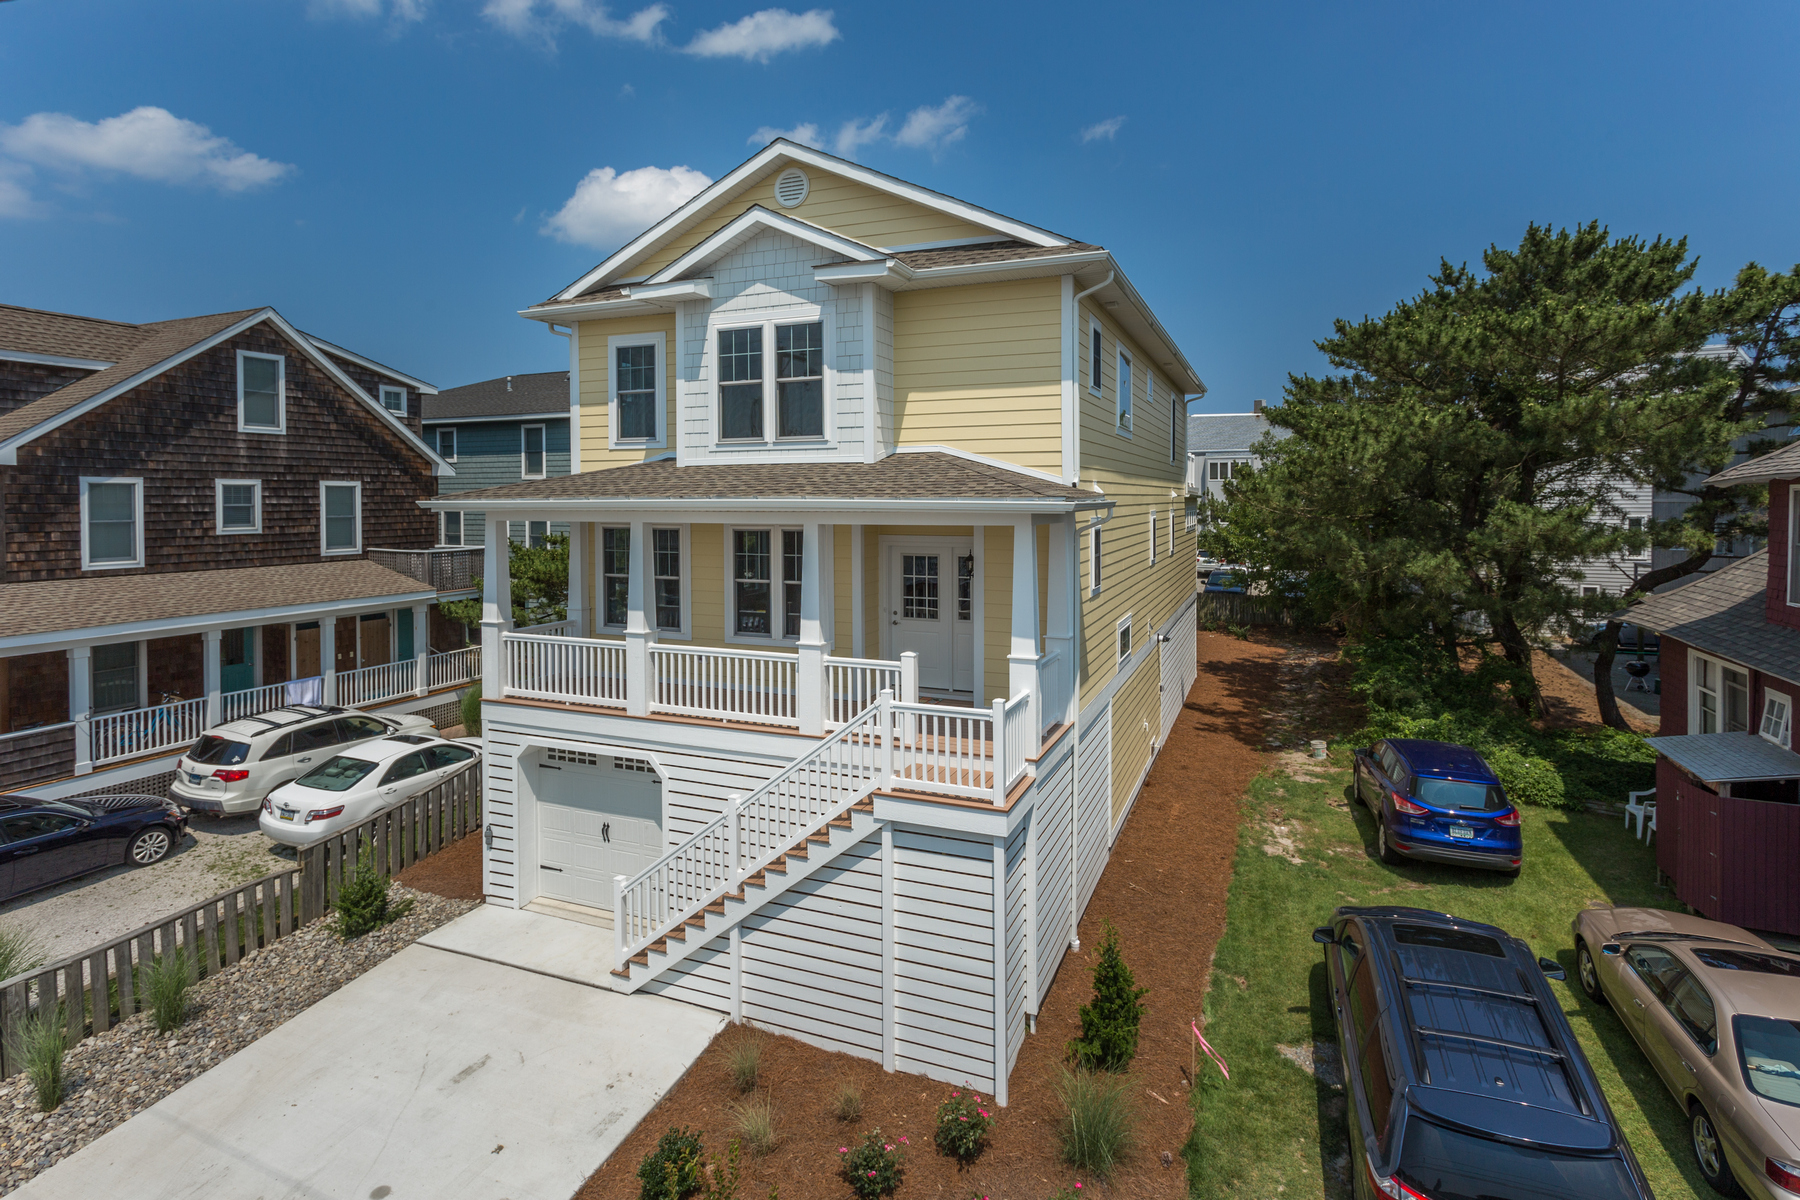 Property For Sale at 26 Atlantic Avenue, Bethany Beach, DE 19930